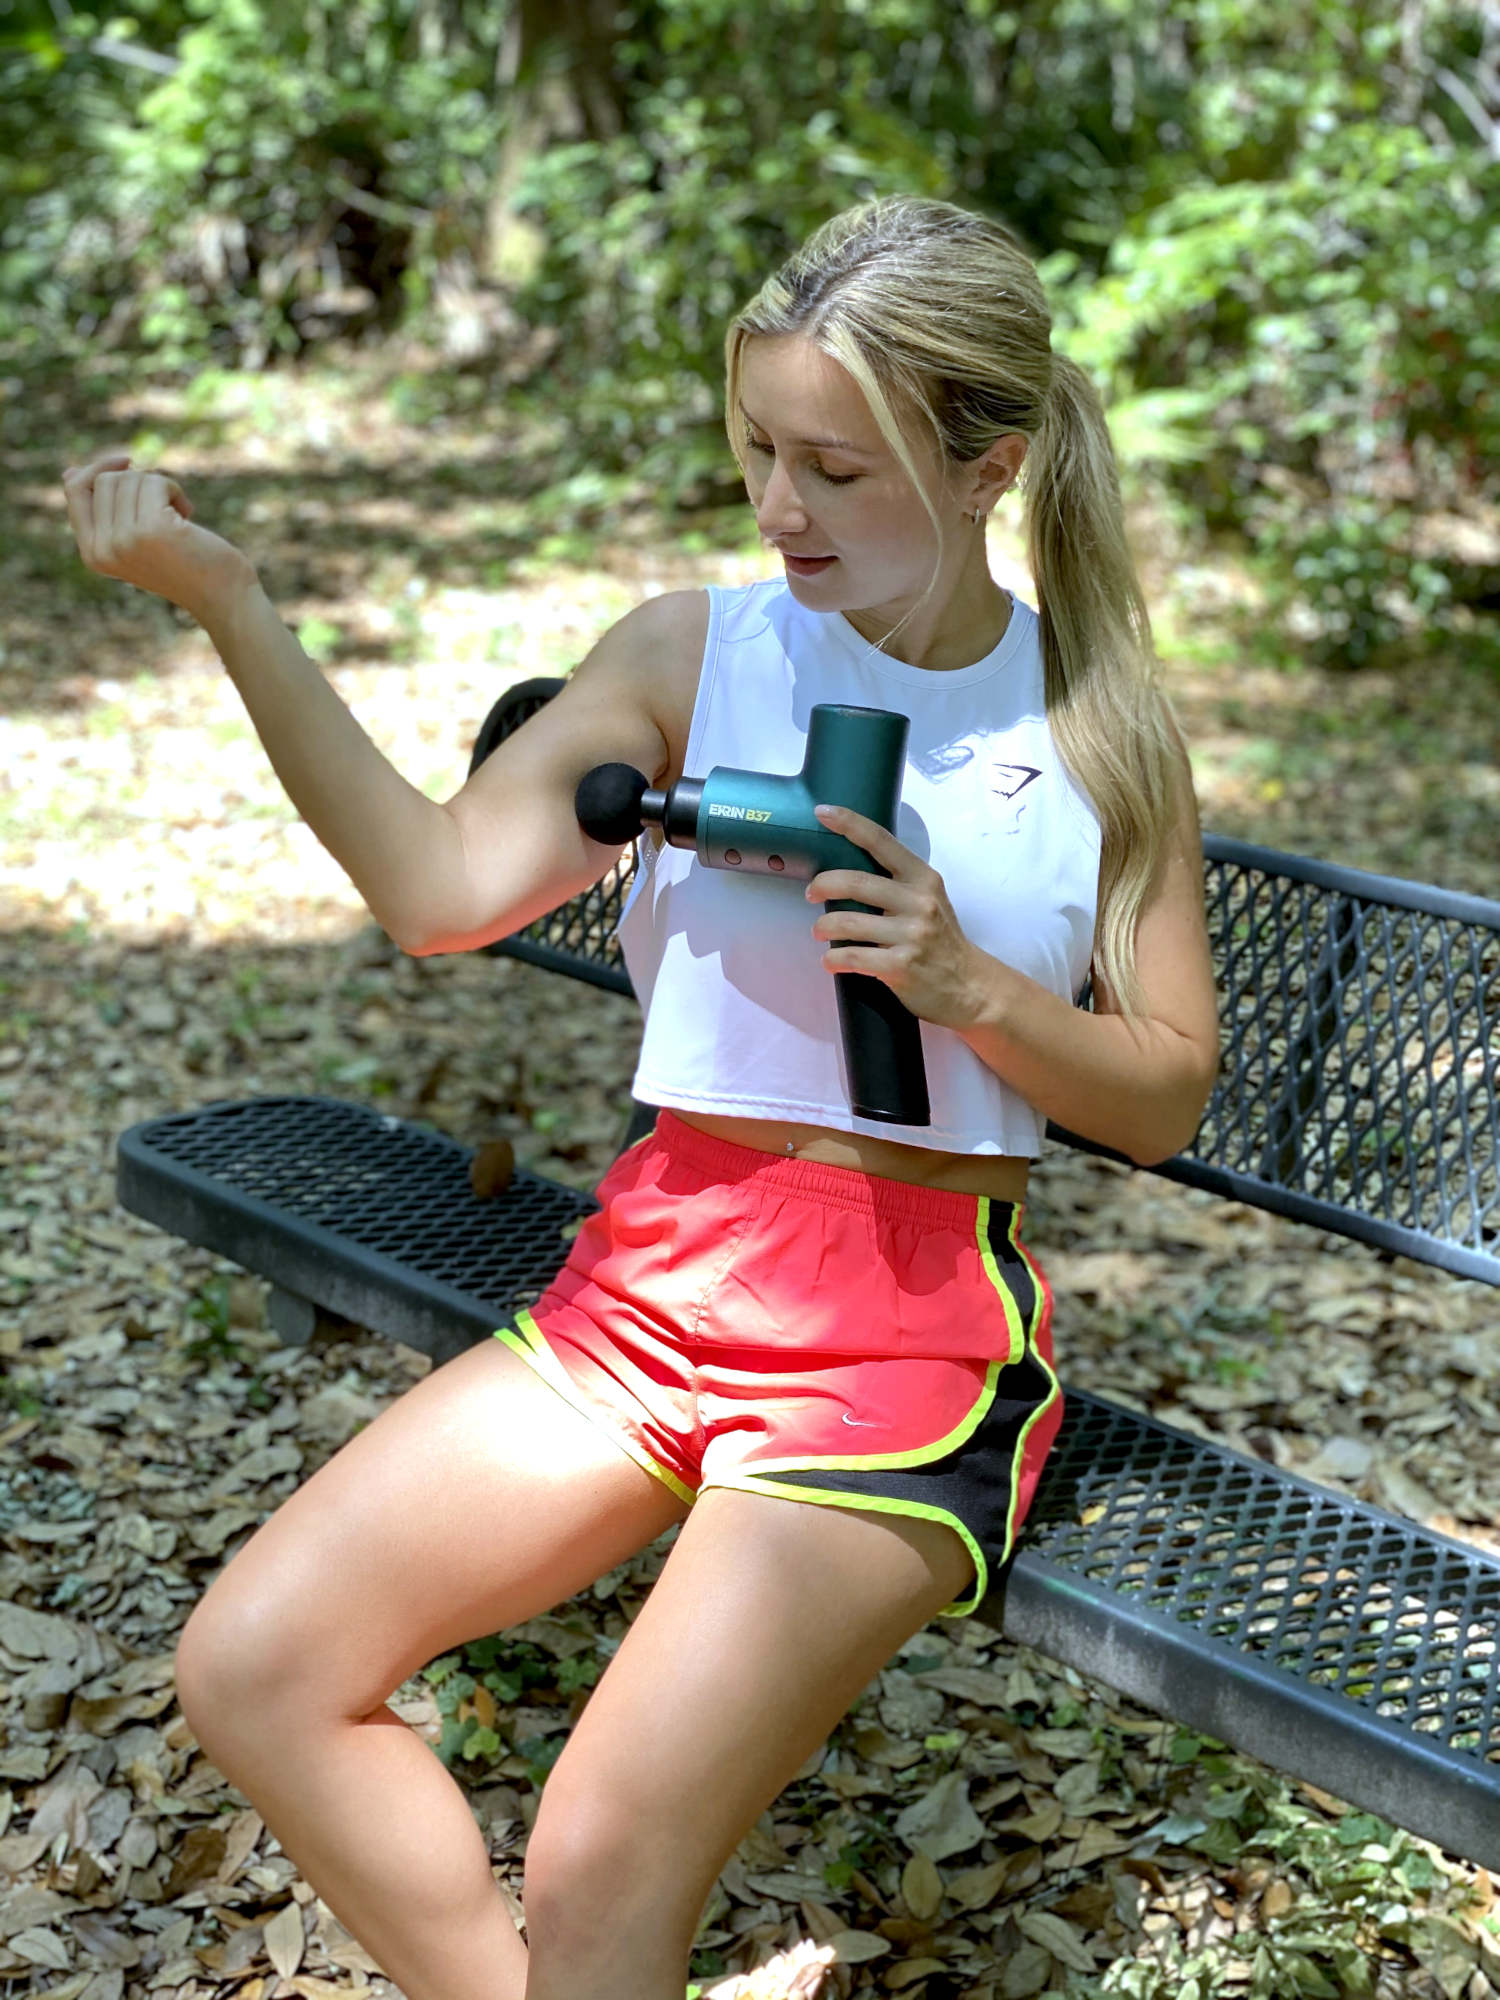 Woman in shorts massages her arm with a massage gun outside on a bench in a park